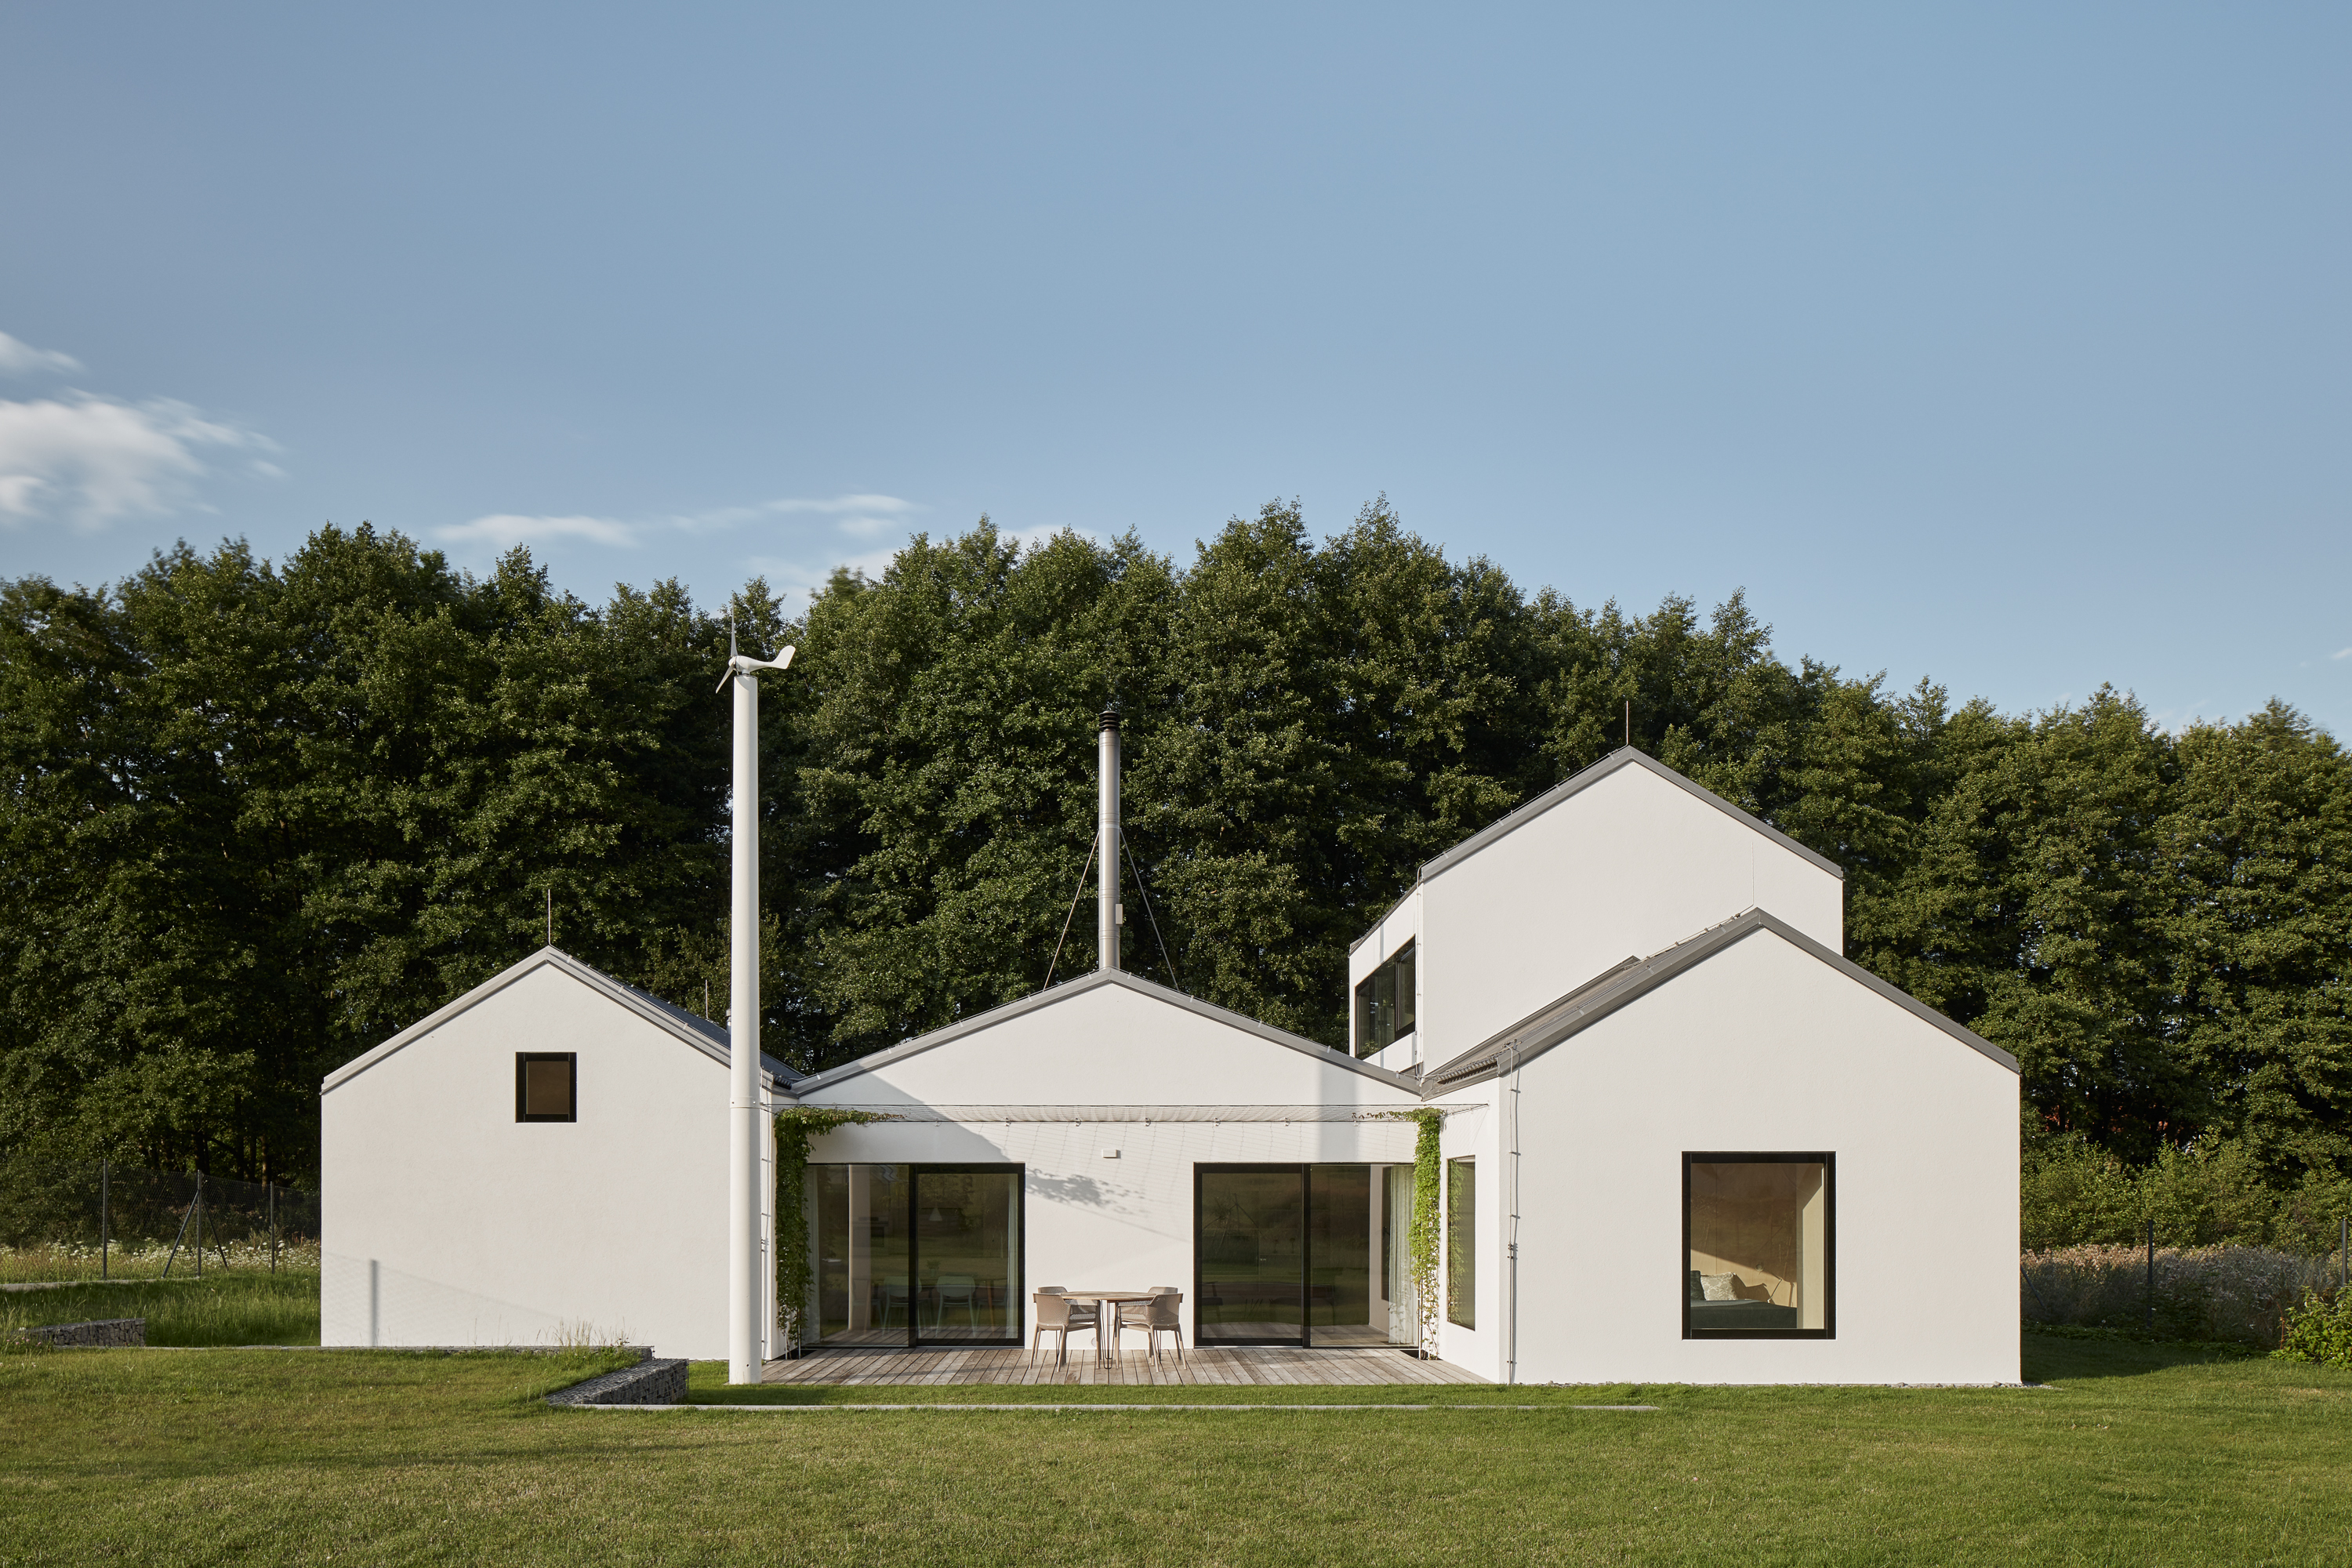 Minimalist summer retreat houses a multigenerational family